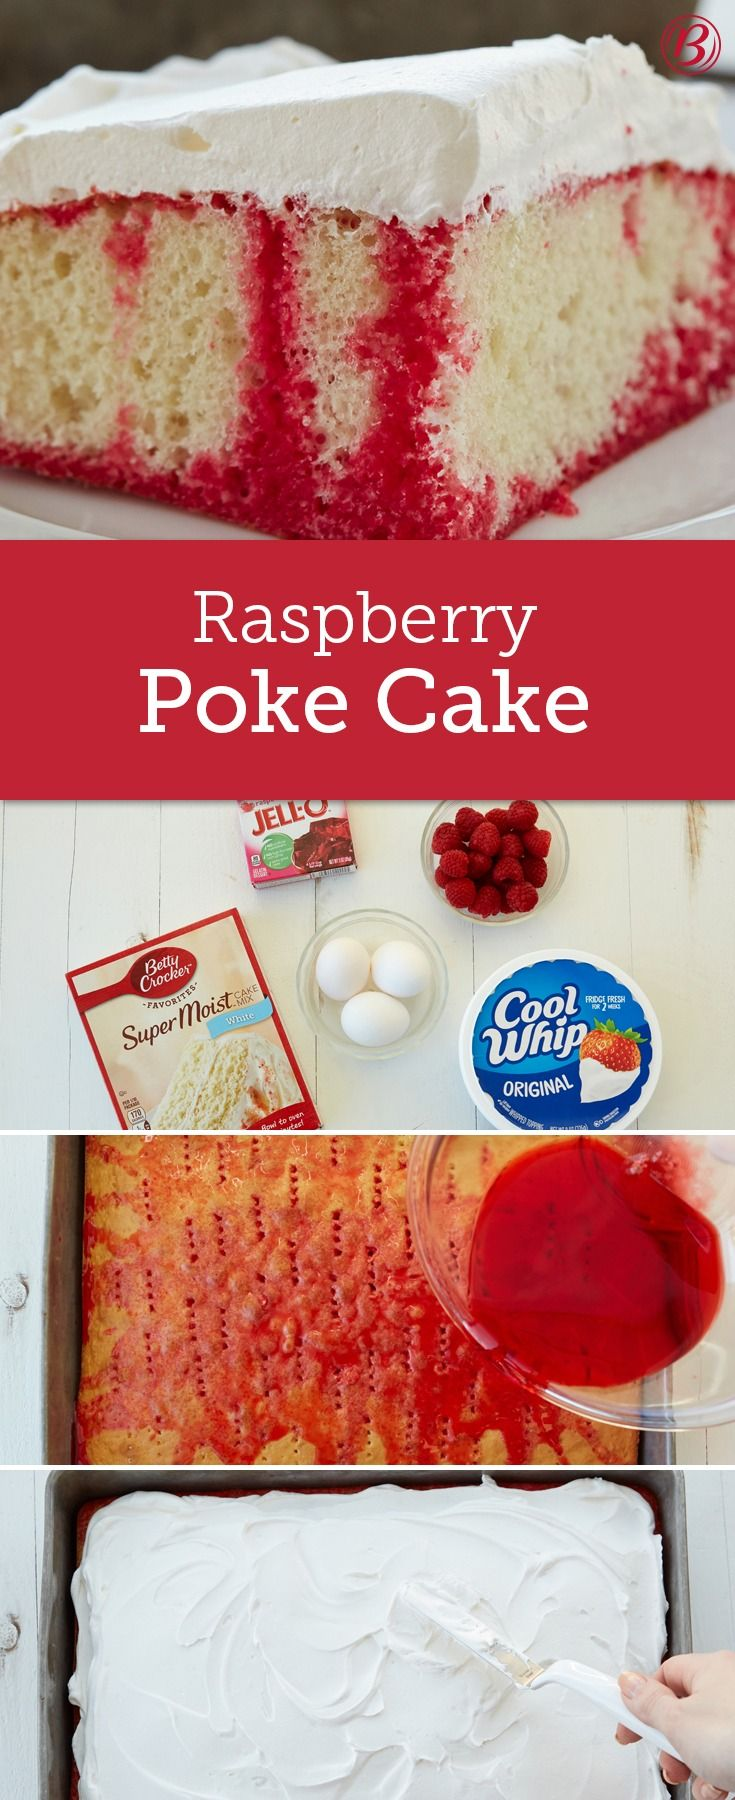 "Poke around your cupboard and freezer and you'll probably find everything you need to make a classic ""poke"" cake. Some things just get easier."